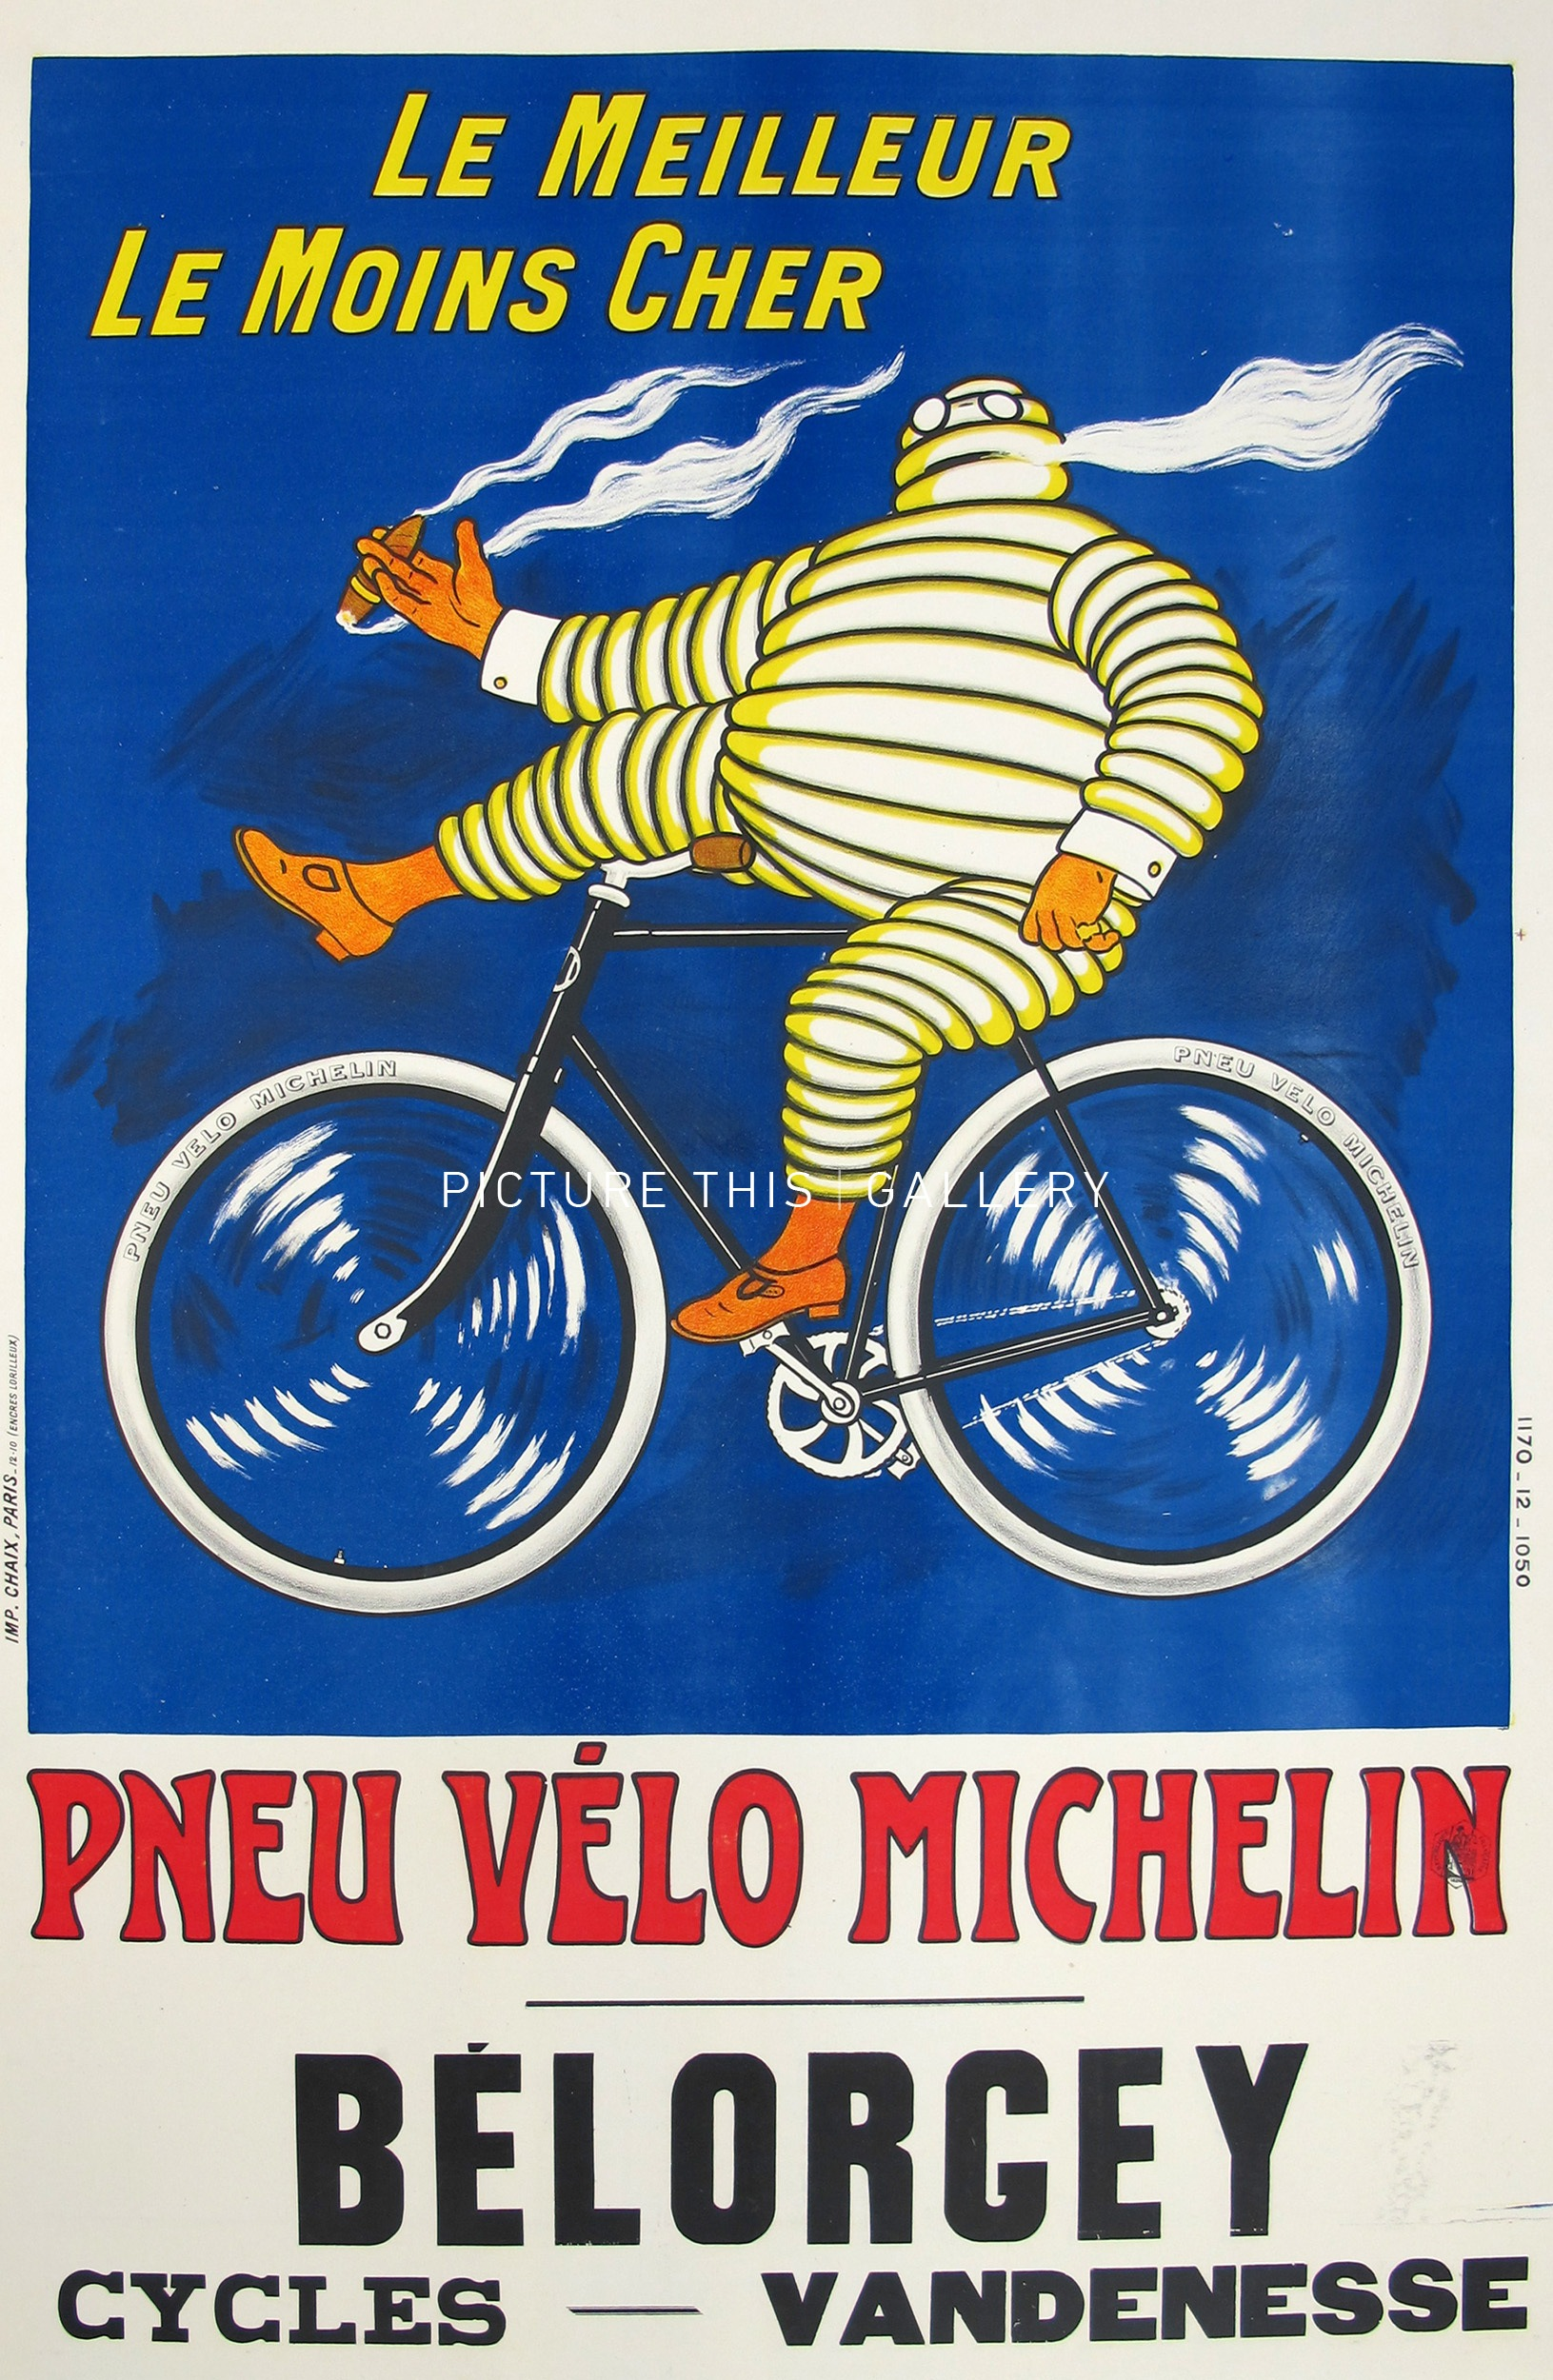 picture this g2749 pneu velo michelin le meilleur le